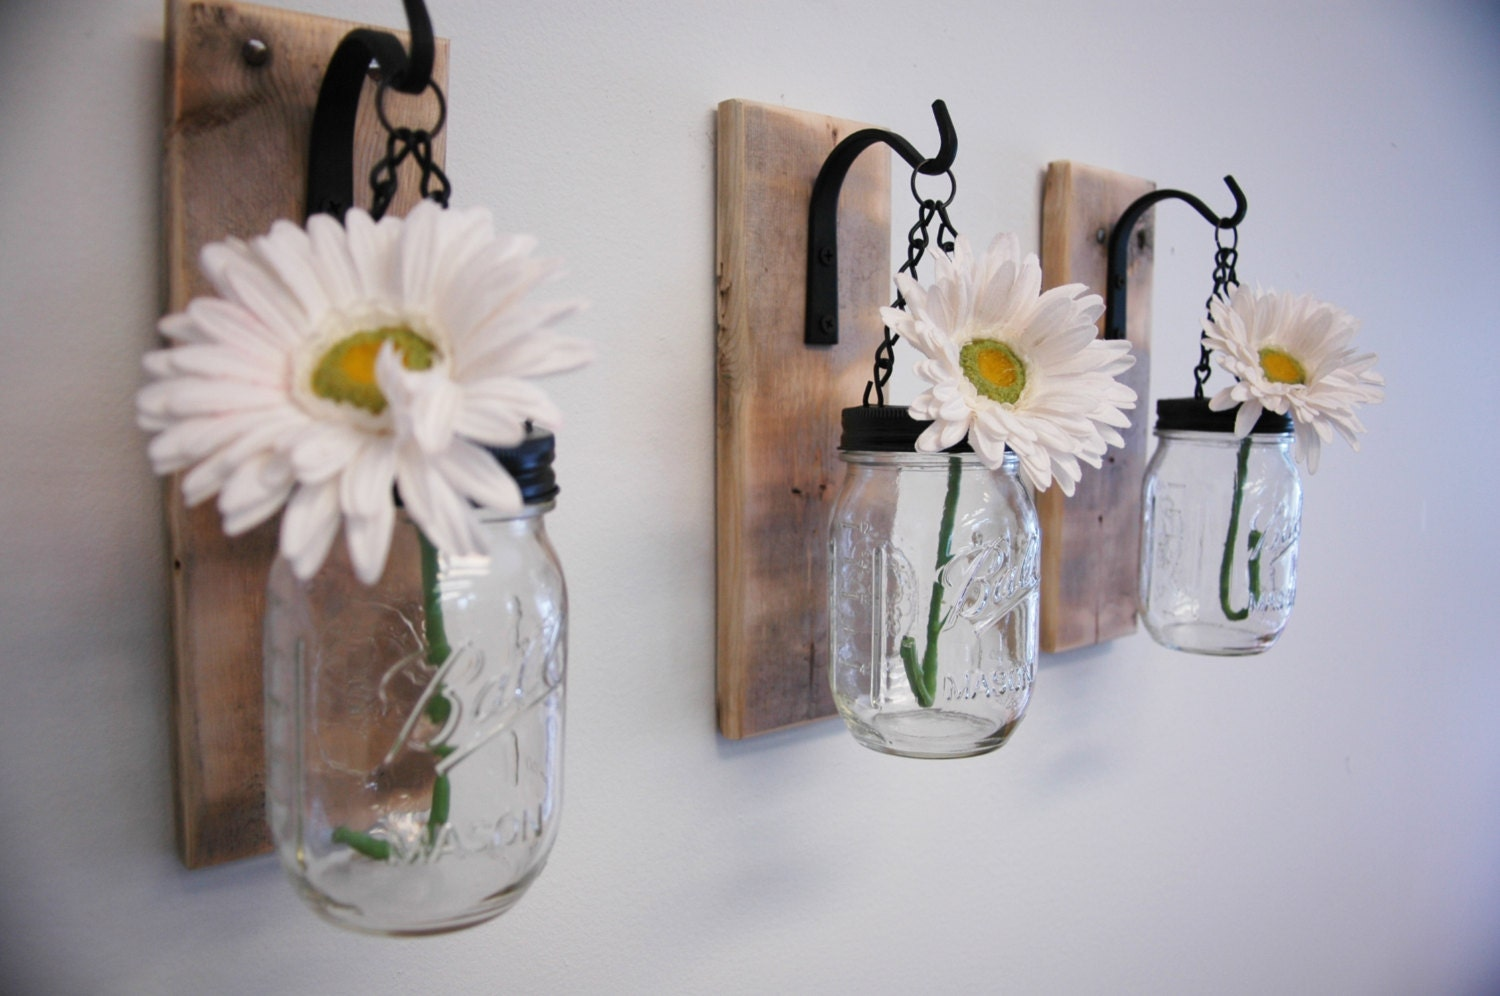 Mason Jar Wall Decor How To : Individual hanging mason jar wall decor by